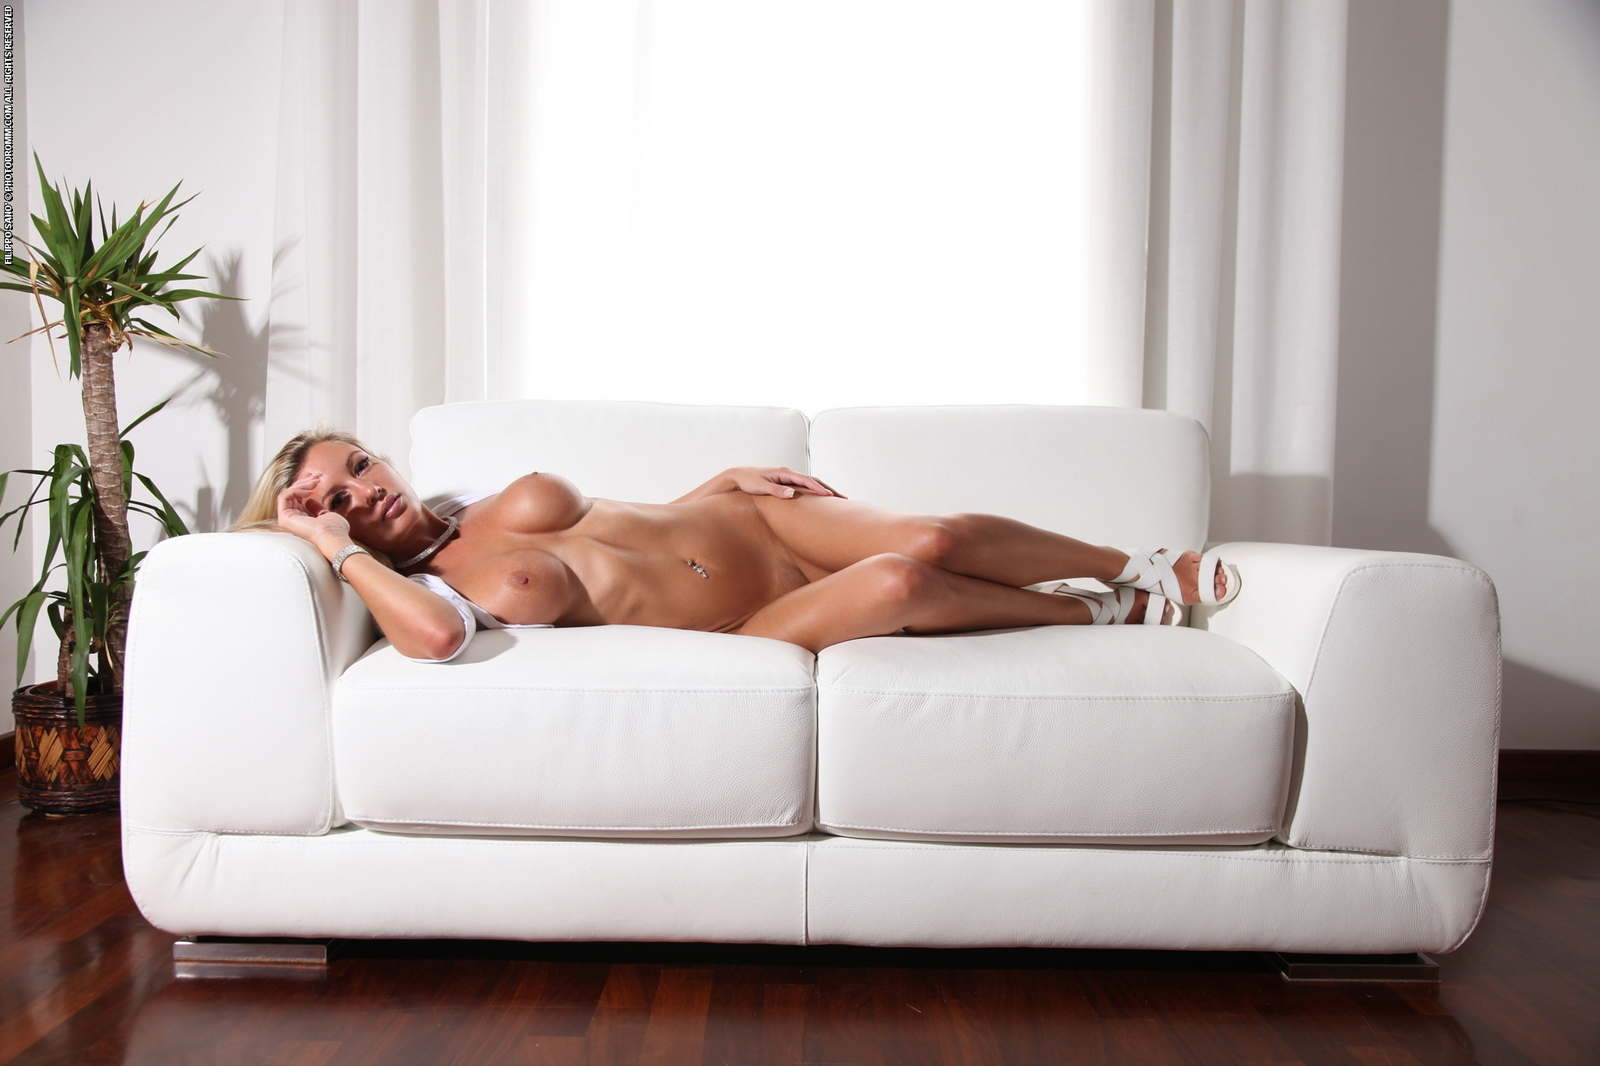 Busty on couch — photo 6